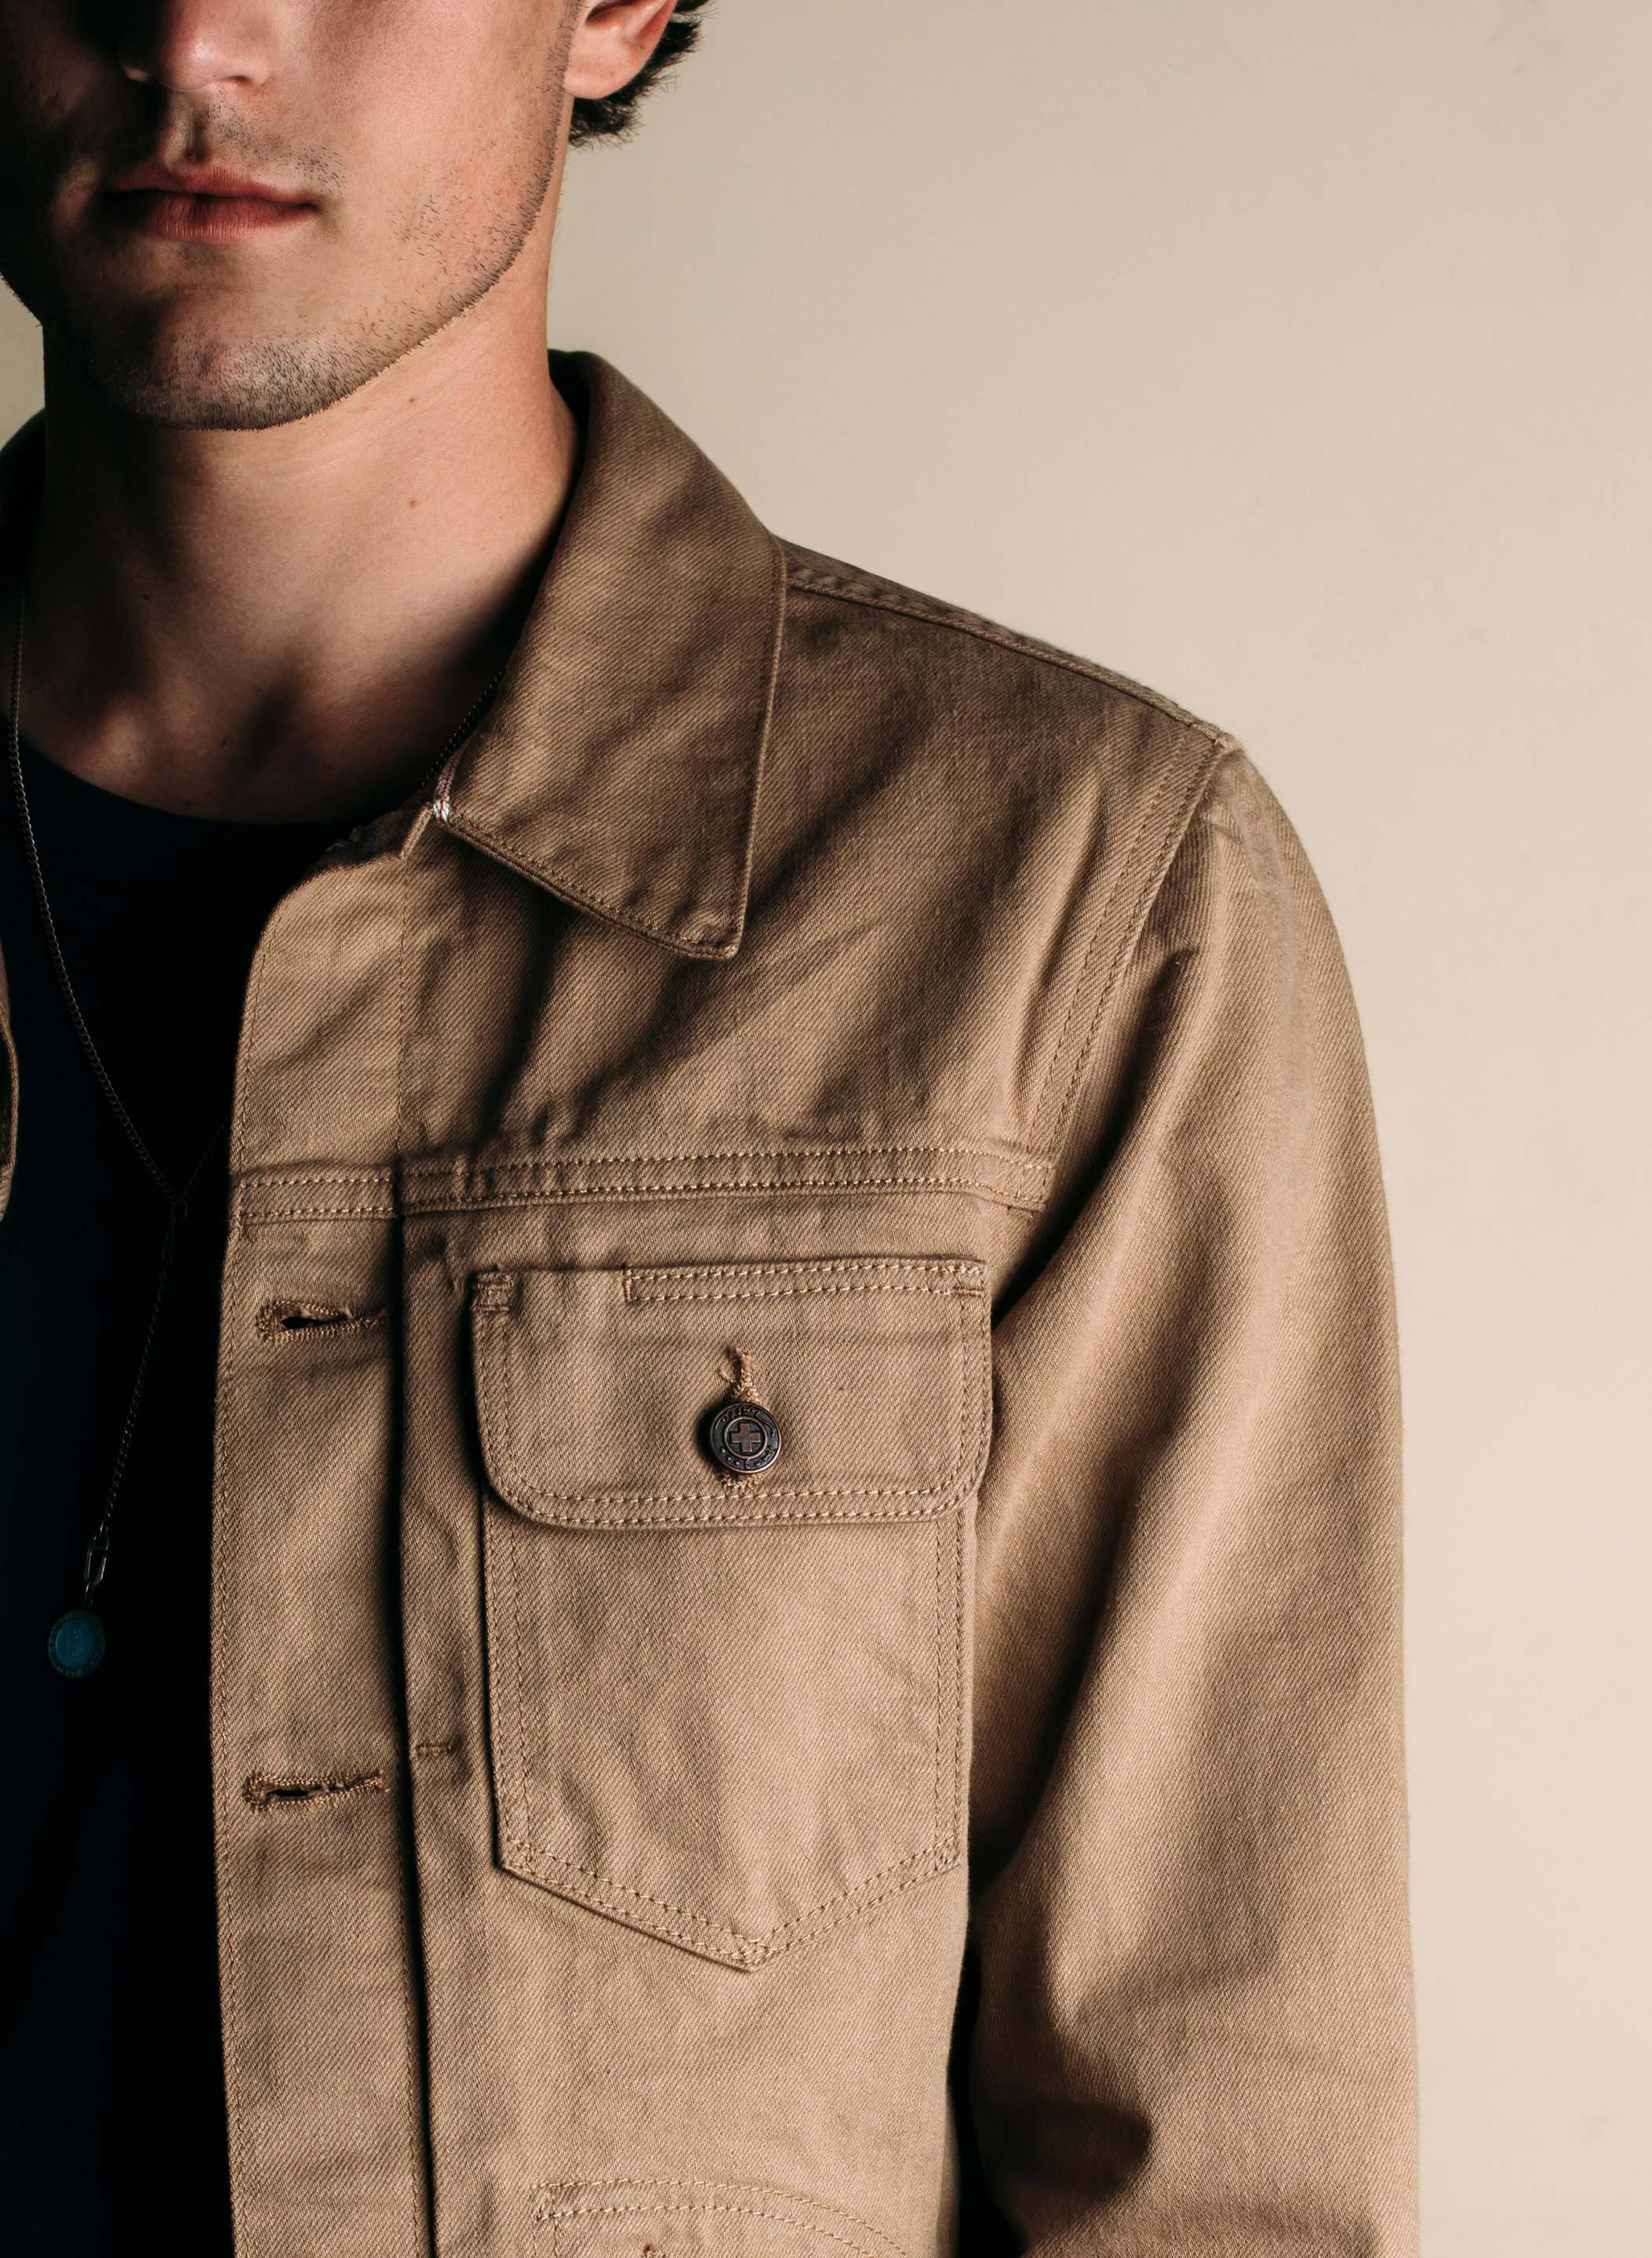 imogene + willie - barnes selvage jacket